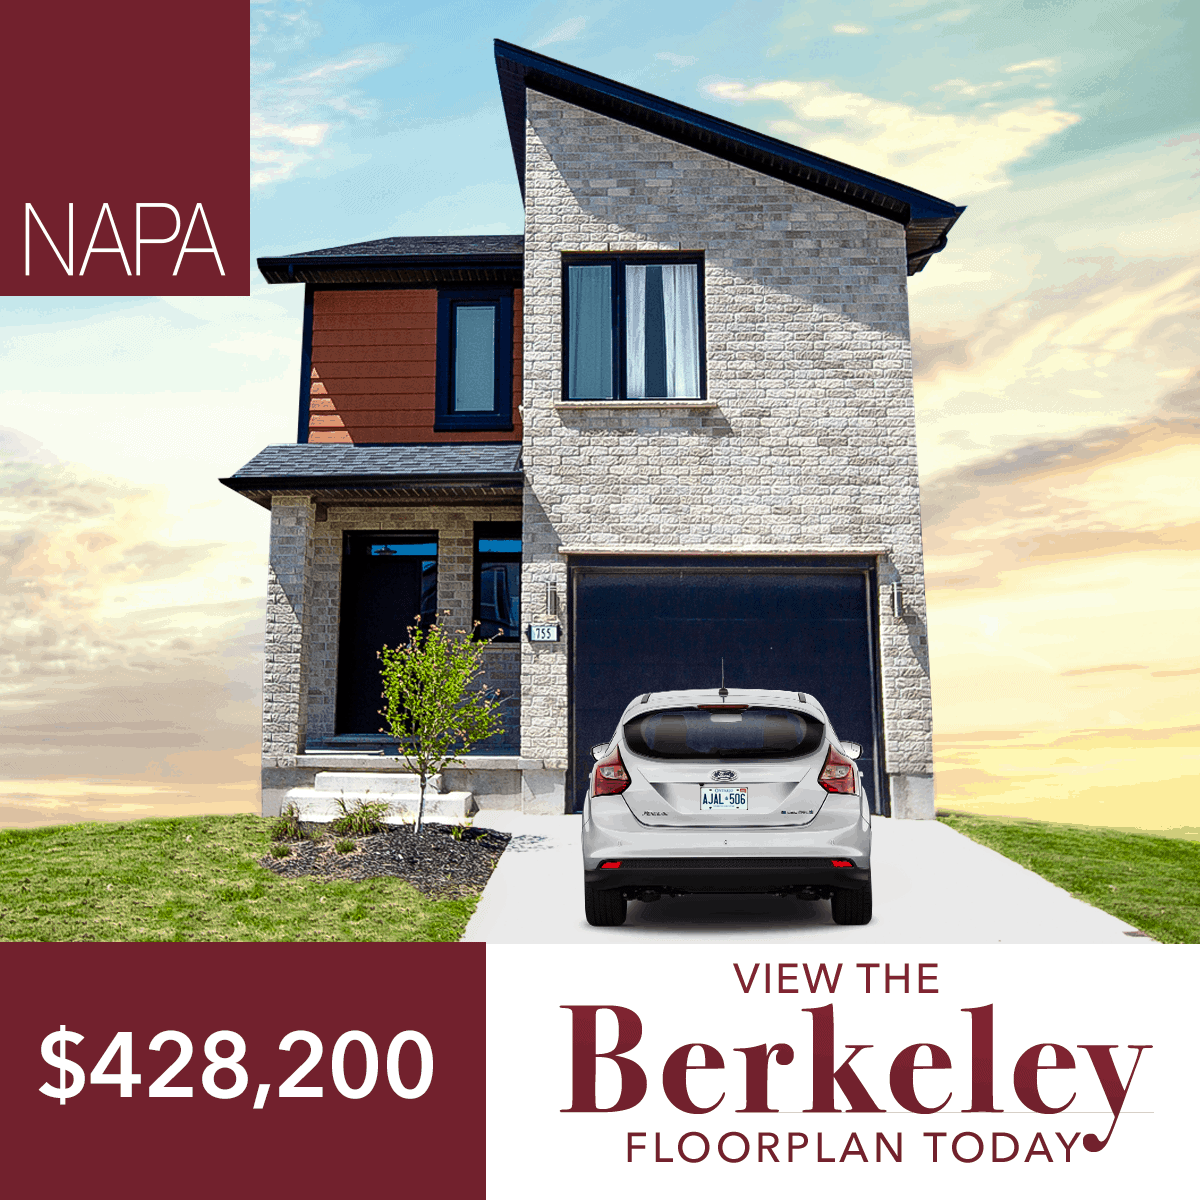 The Berkeley New Home For Sale in London Ontario for $428,200